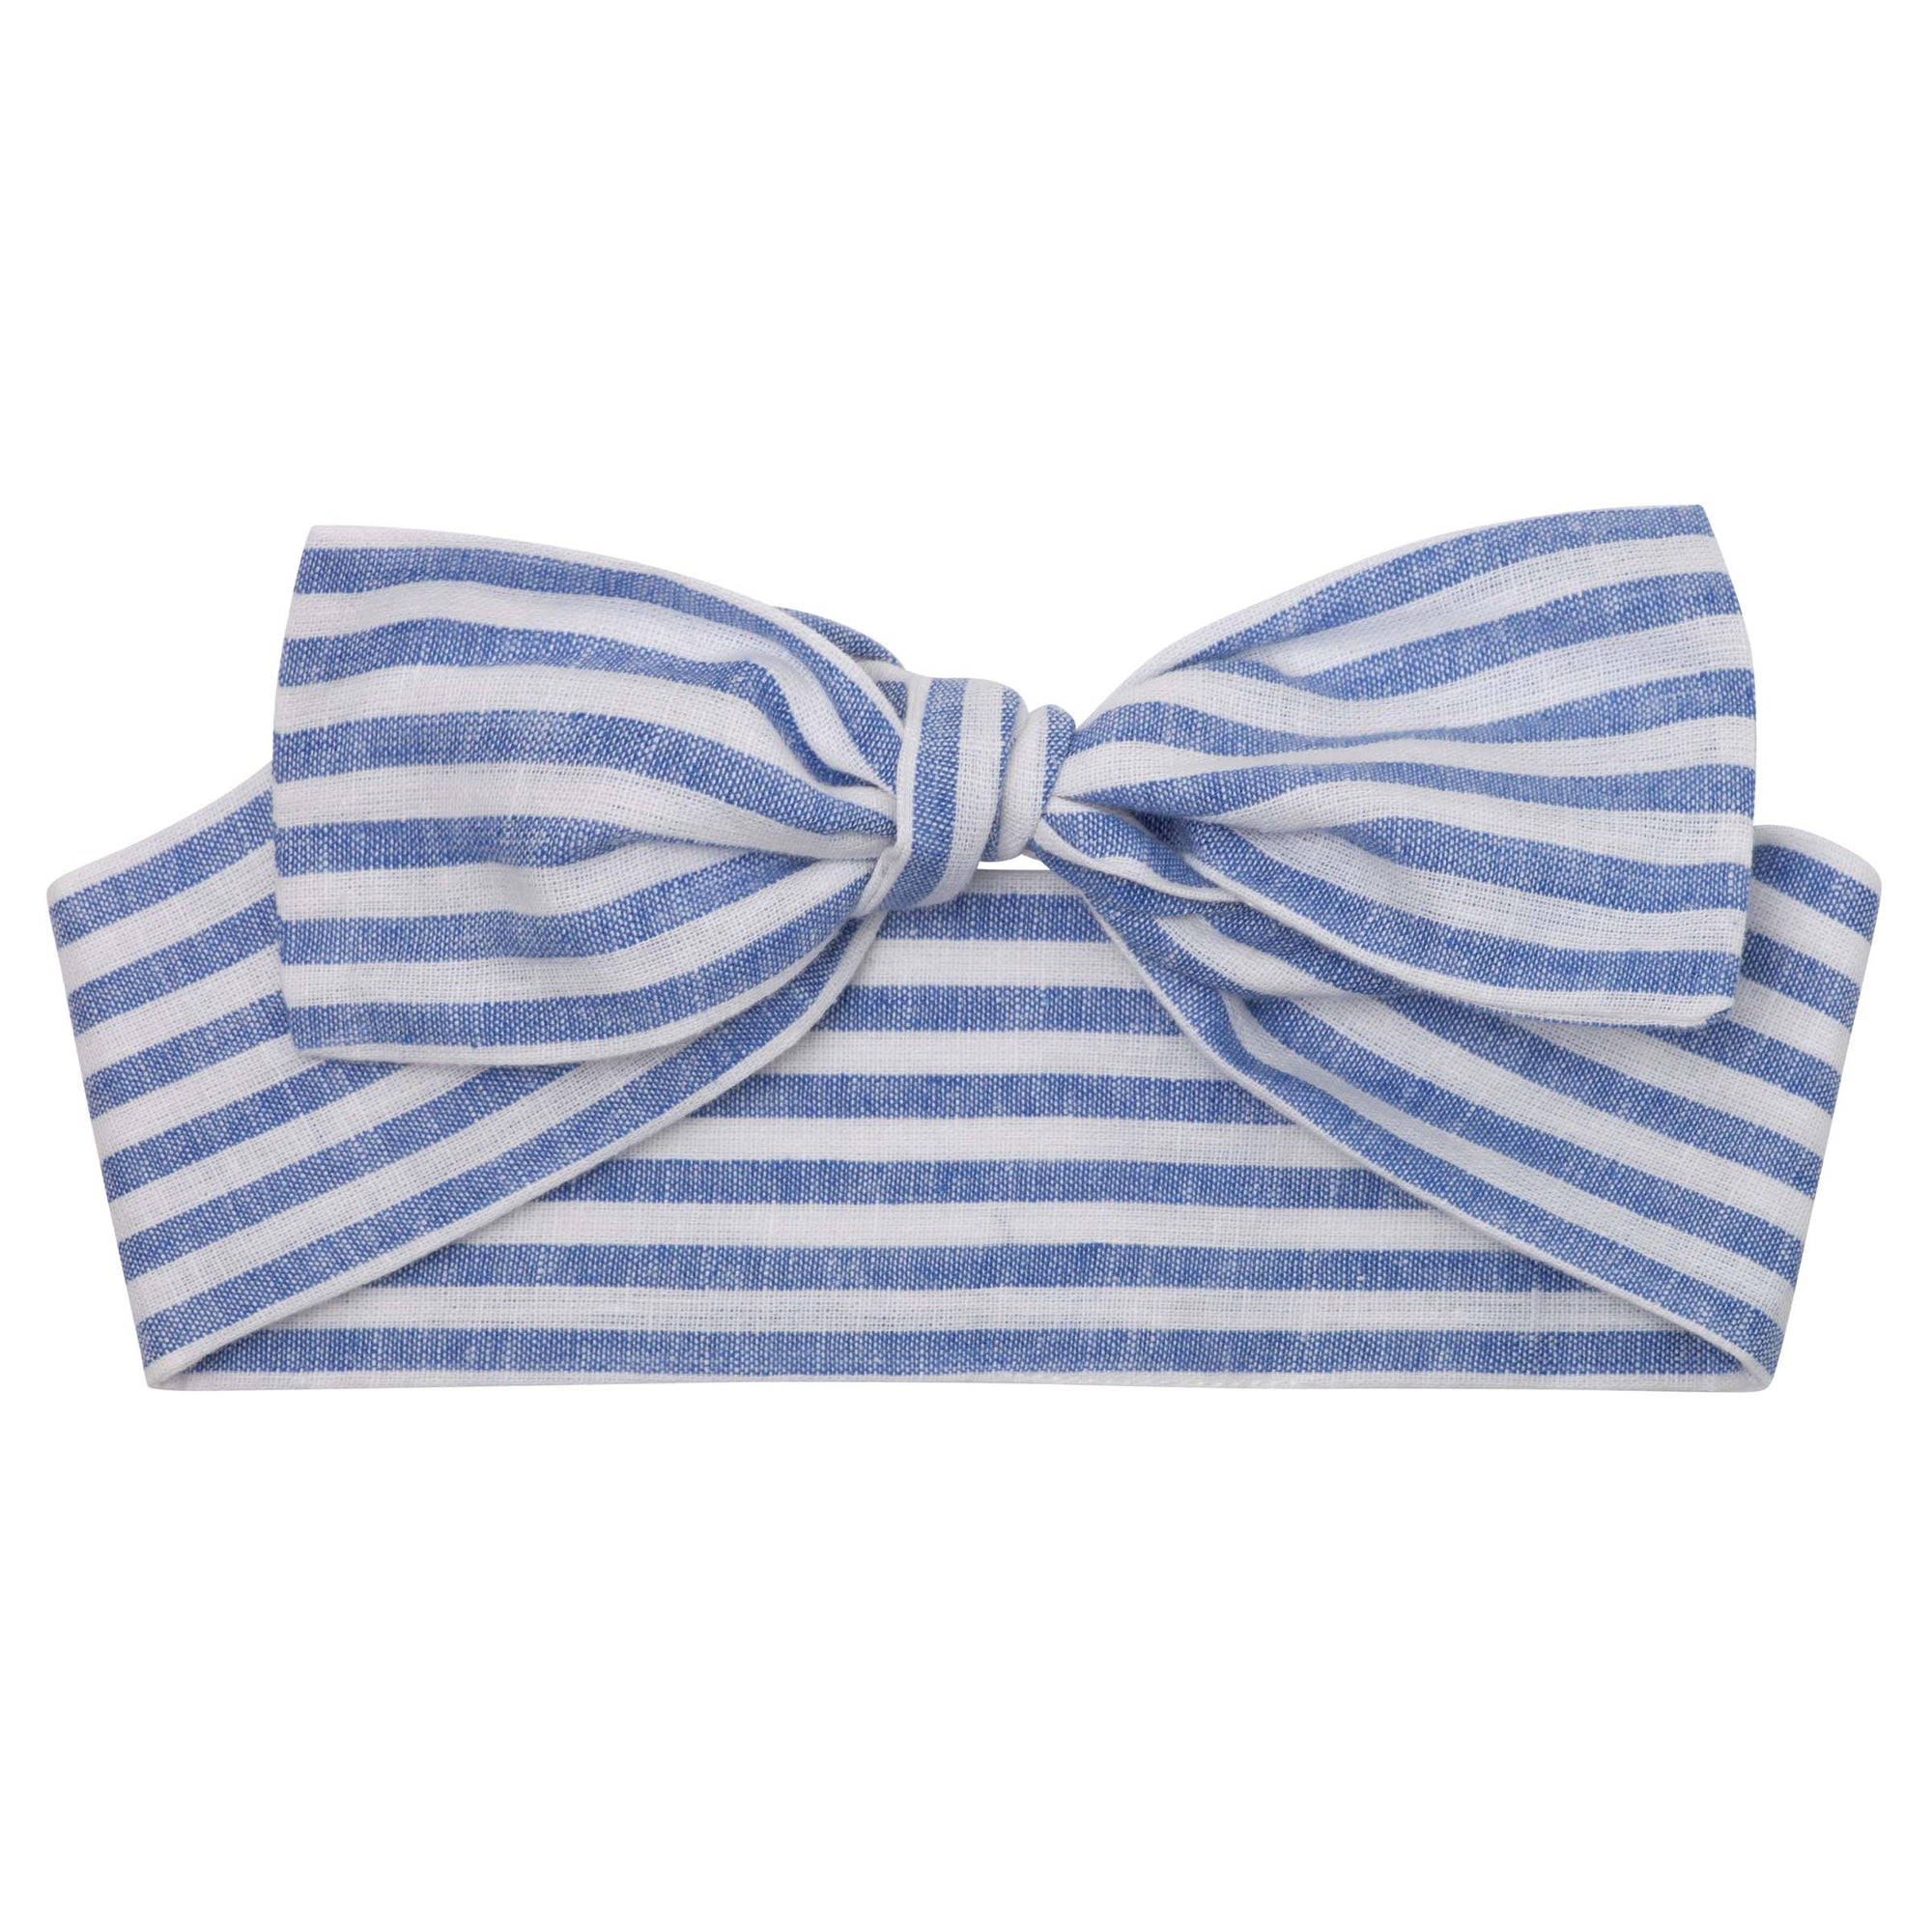 Buy Linen Headband - Seaside Stripe - Designer Kidz | Special Occasions, Party Wear & Weddings  | Sizes 000-16 | Little Girls Party Dresses, Tutu Dresses, Flower Girl Dresses | Pay with Afterpay | Free AU Delivery Over $80